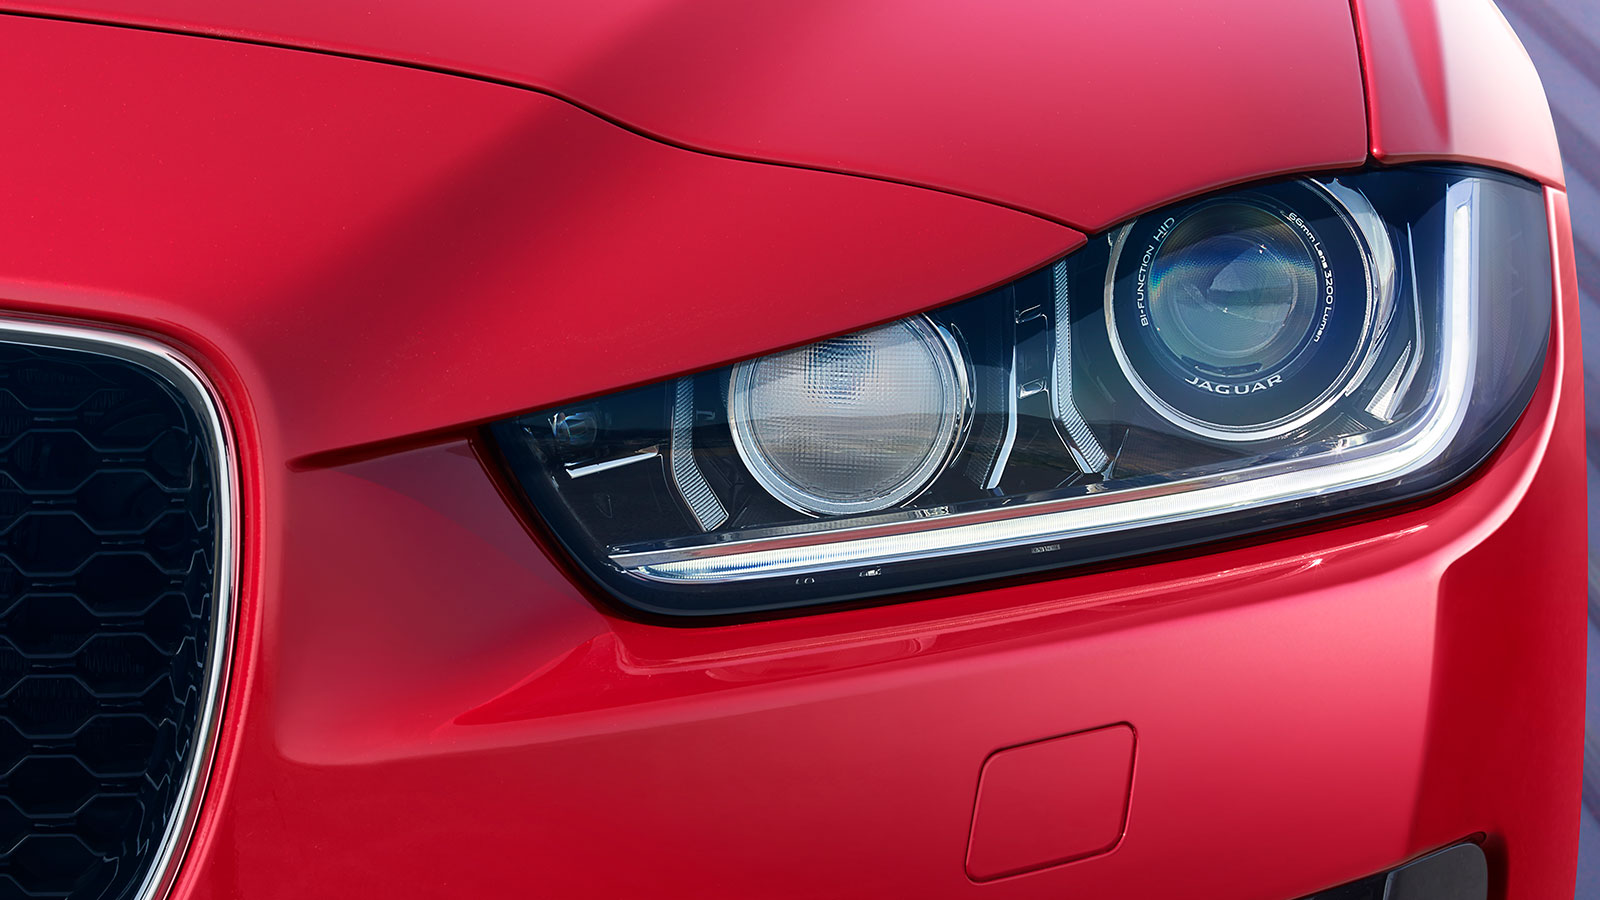 Close-up of Jaguar XE's signature 'J' Blade LED Daytime Running Lights.